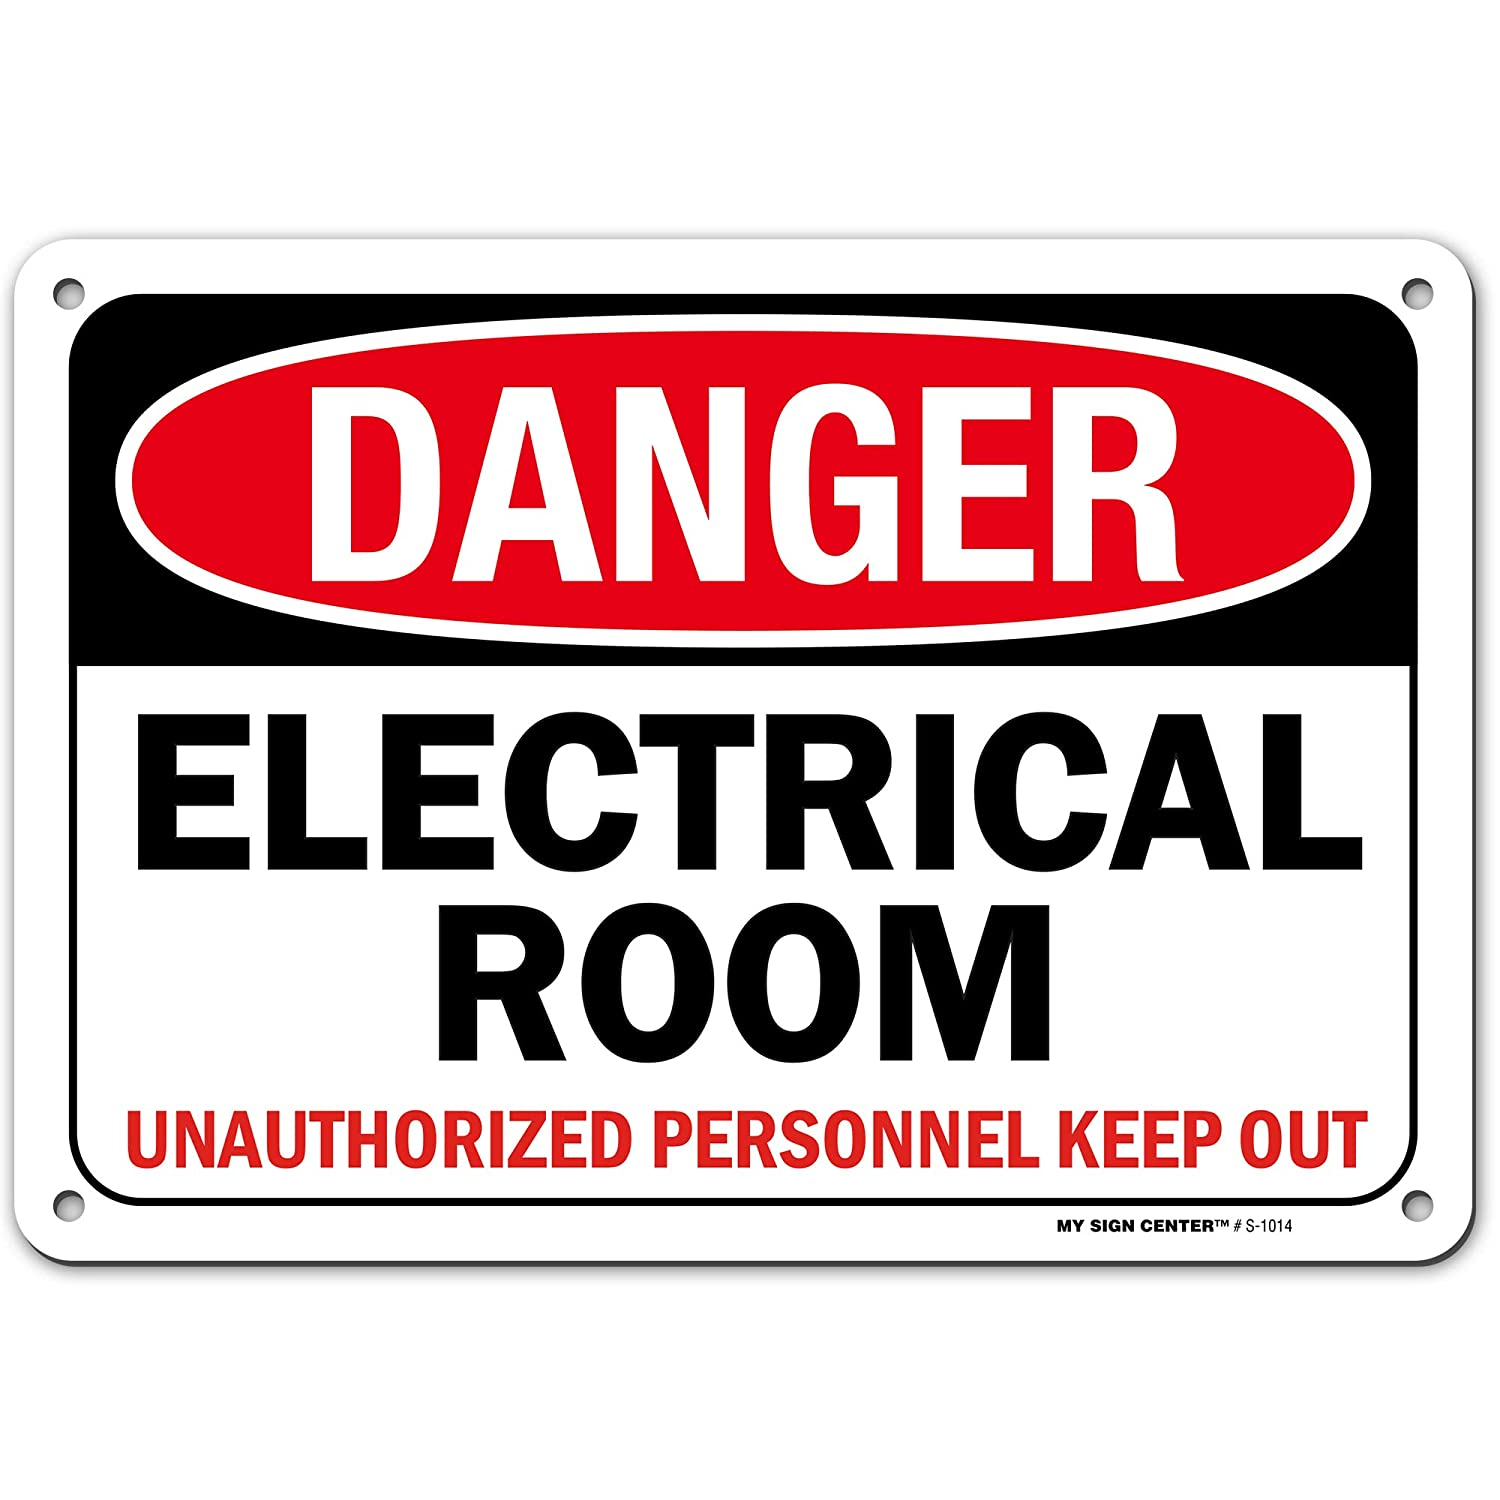 High Voltage Electrical Room Sign, Danger Authorized Personnel Only, Made Out of .040 Rust-Free Aluminum, Indoor/Outdoor Use, UV Protected and Fade-Resistant, 7